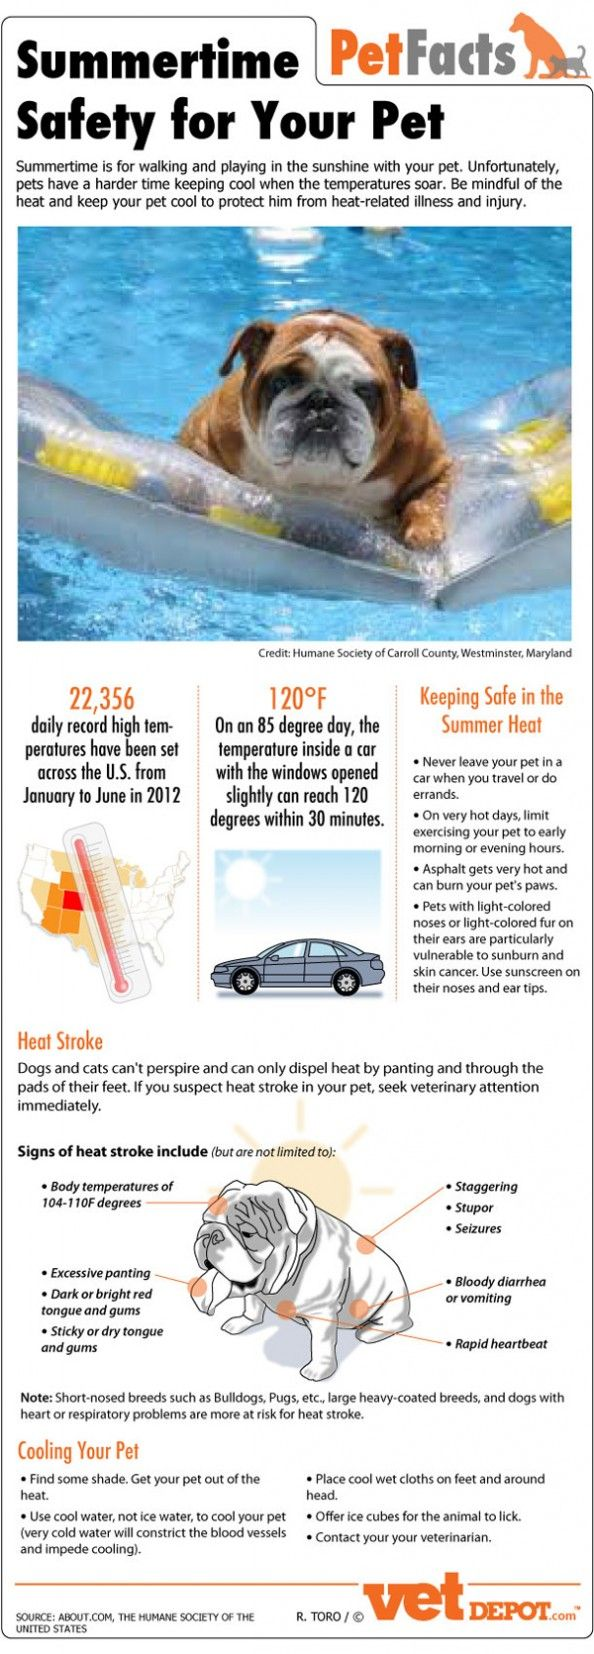 Summertime Pet Safety Infographic